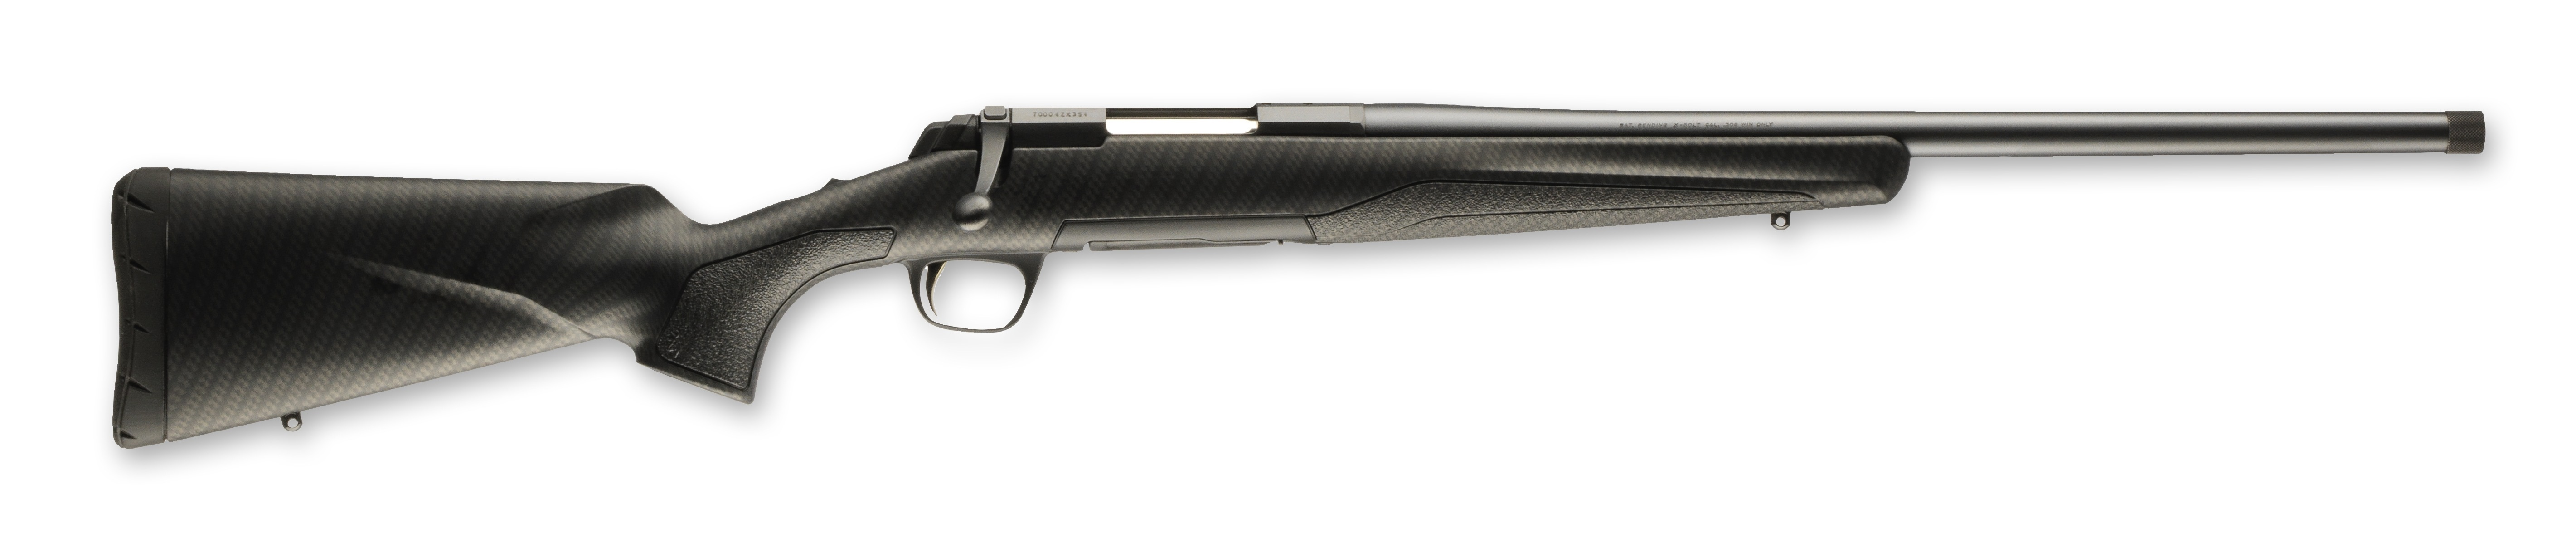 BROWNING X BOLT HOG STALKER CARBON FIBER 308 WIN RIFLE